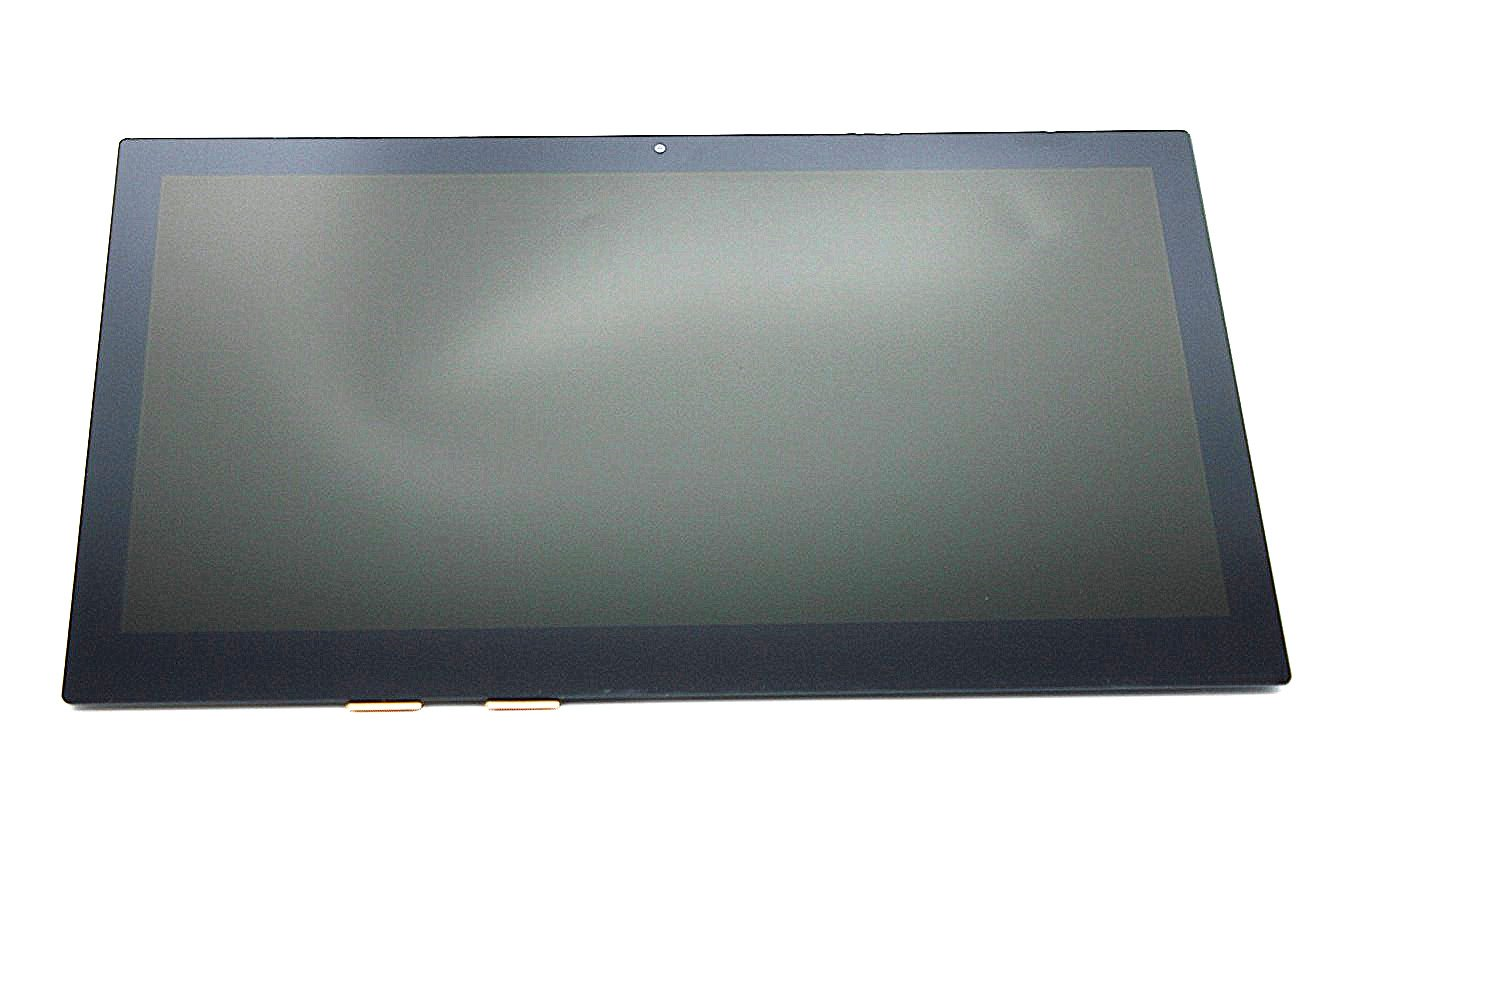 LCDOLED 13.3 inch FullHD 1080P LED LCD Display Touch Screen Digitizer Assembly For Dell Inspiron 13 7000 series 7347 7348 7352 7353 7359 P57G (NO BEZEL)